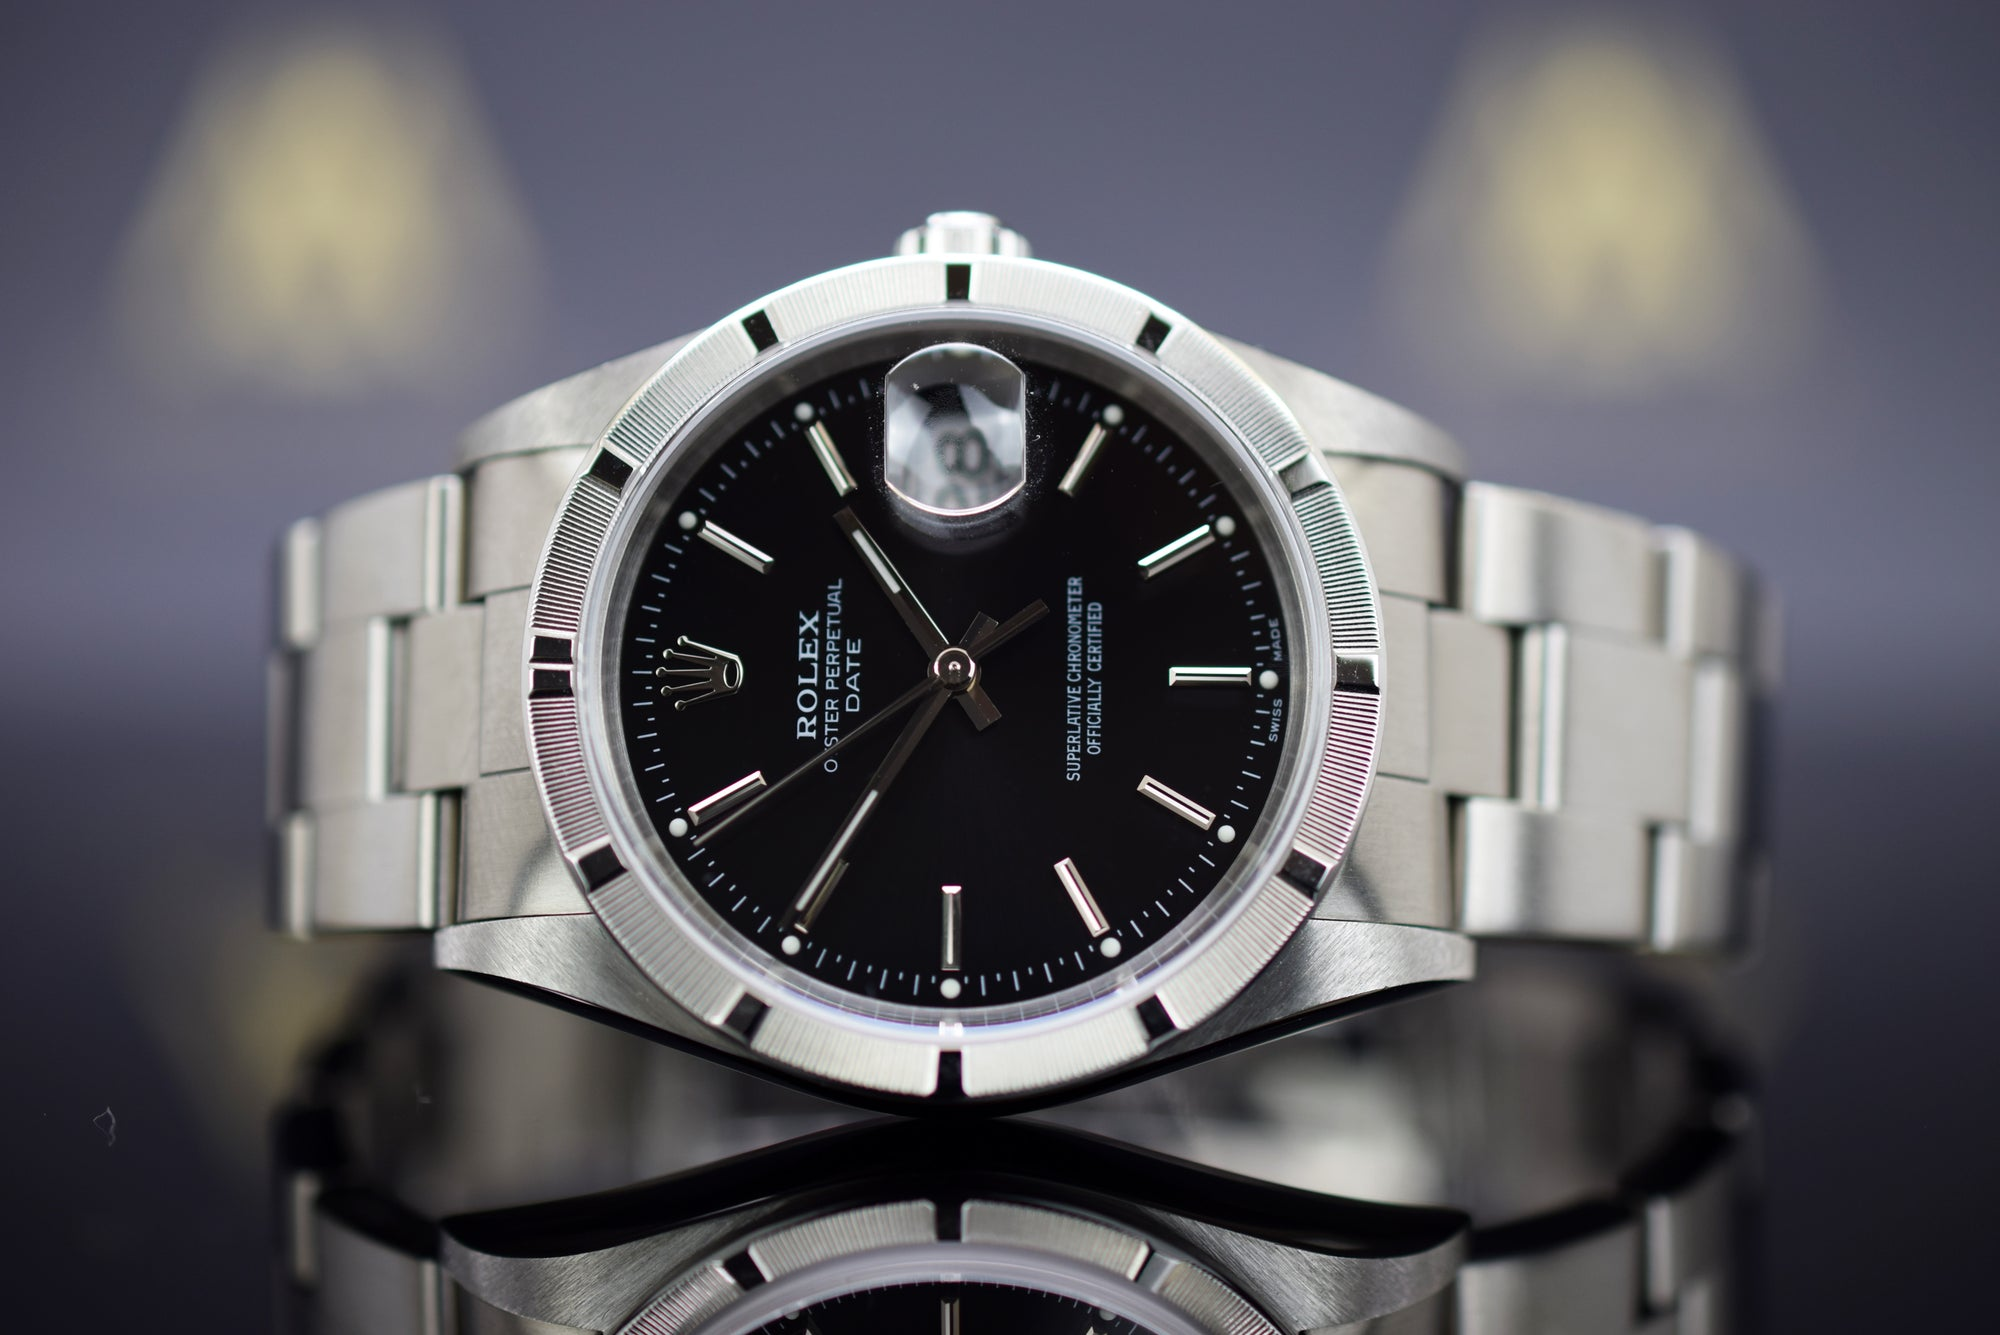 Rolex Oyster Perpetual Date 34mm - Aus 2003